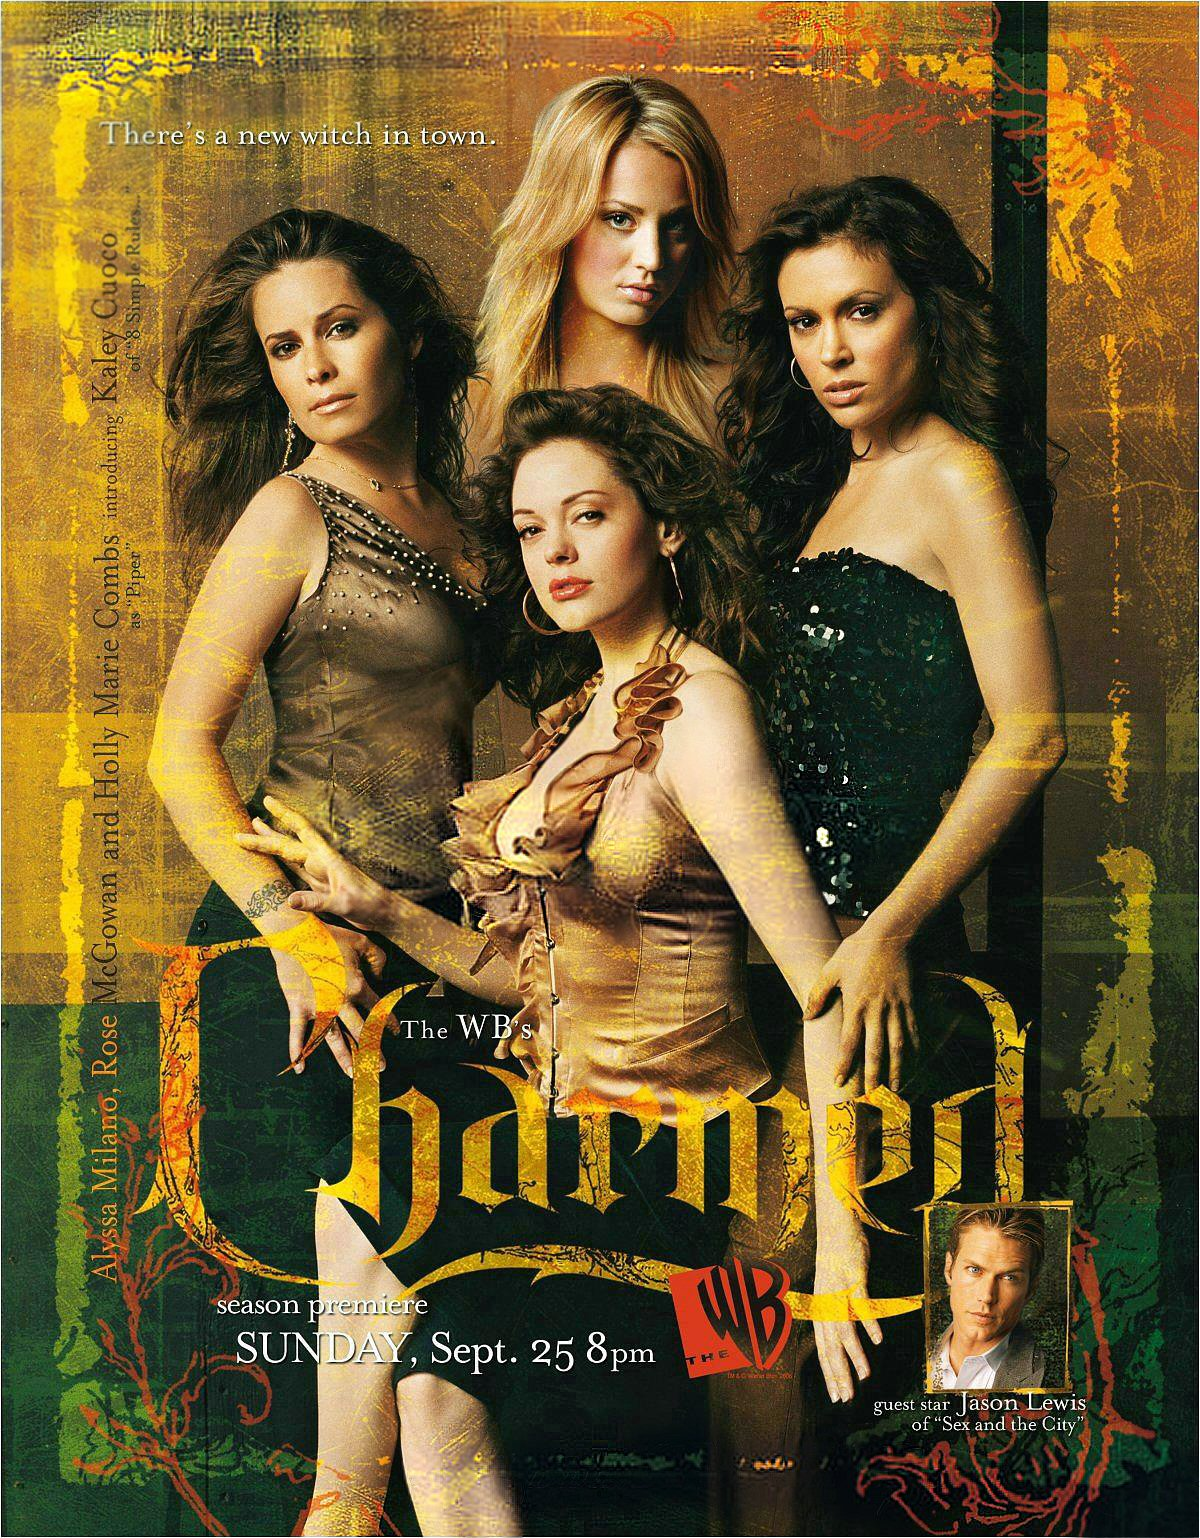 Charmed (1998) Season 1,2,3,4,5,6,7,8 Full